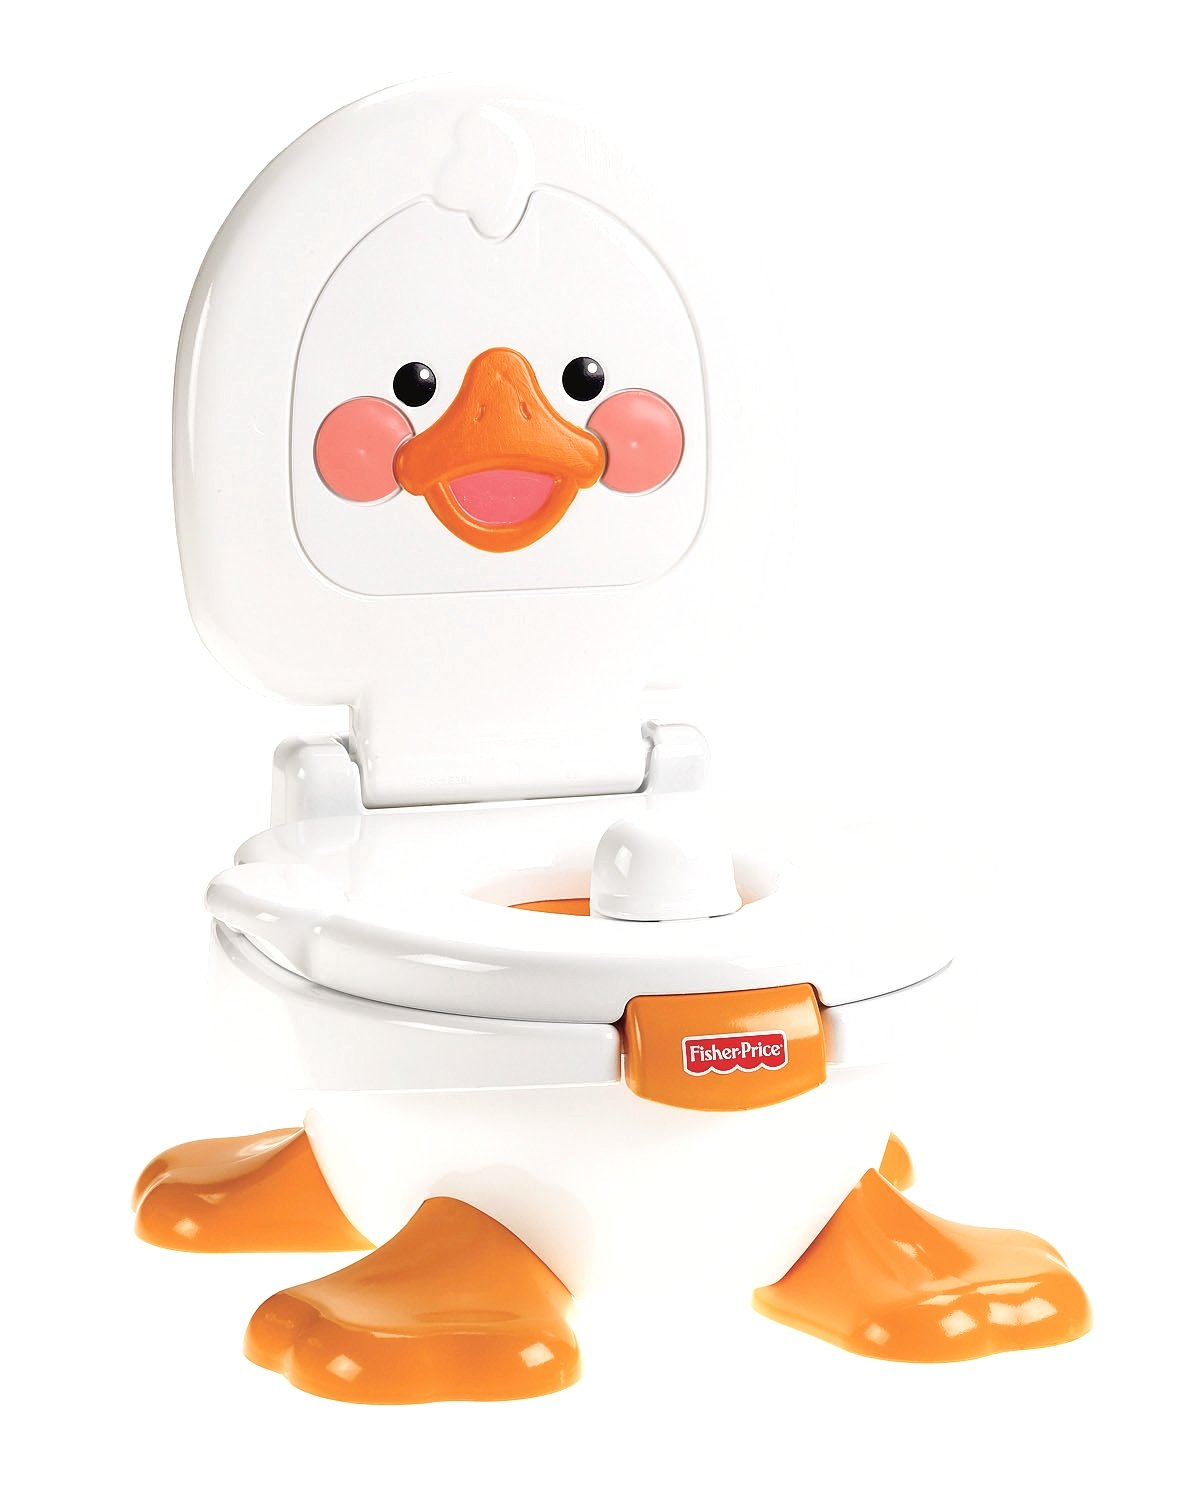 Potty Ducky Fun 3 1 Fisher Price New Training Chair Toilet